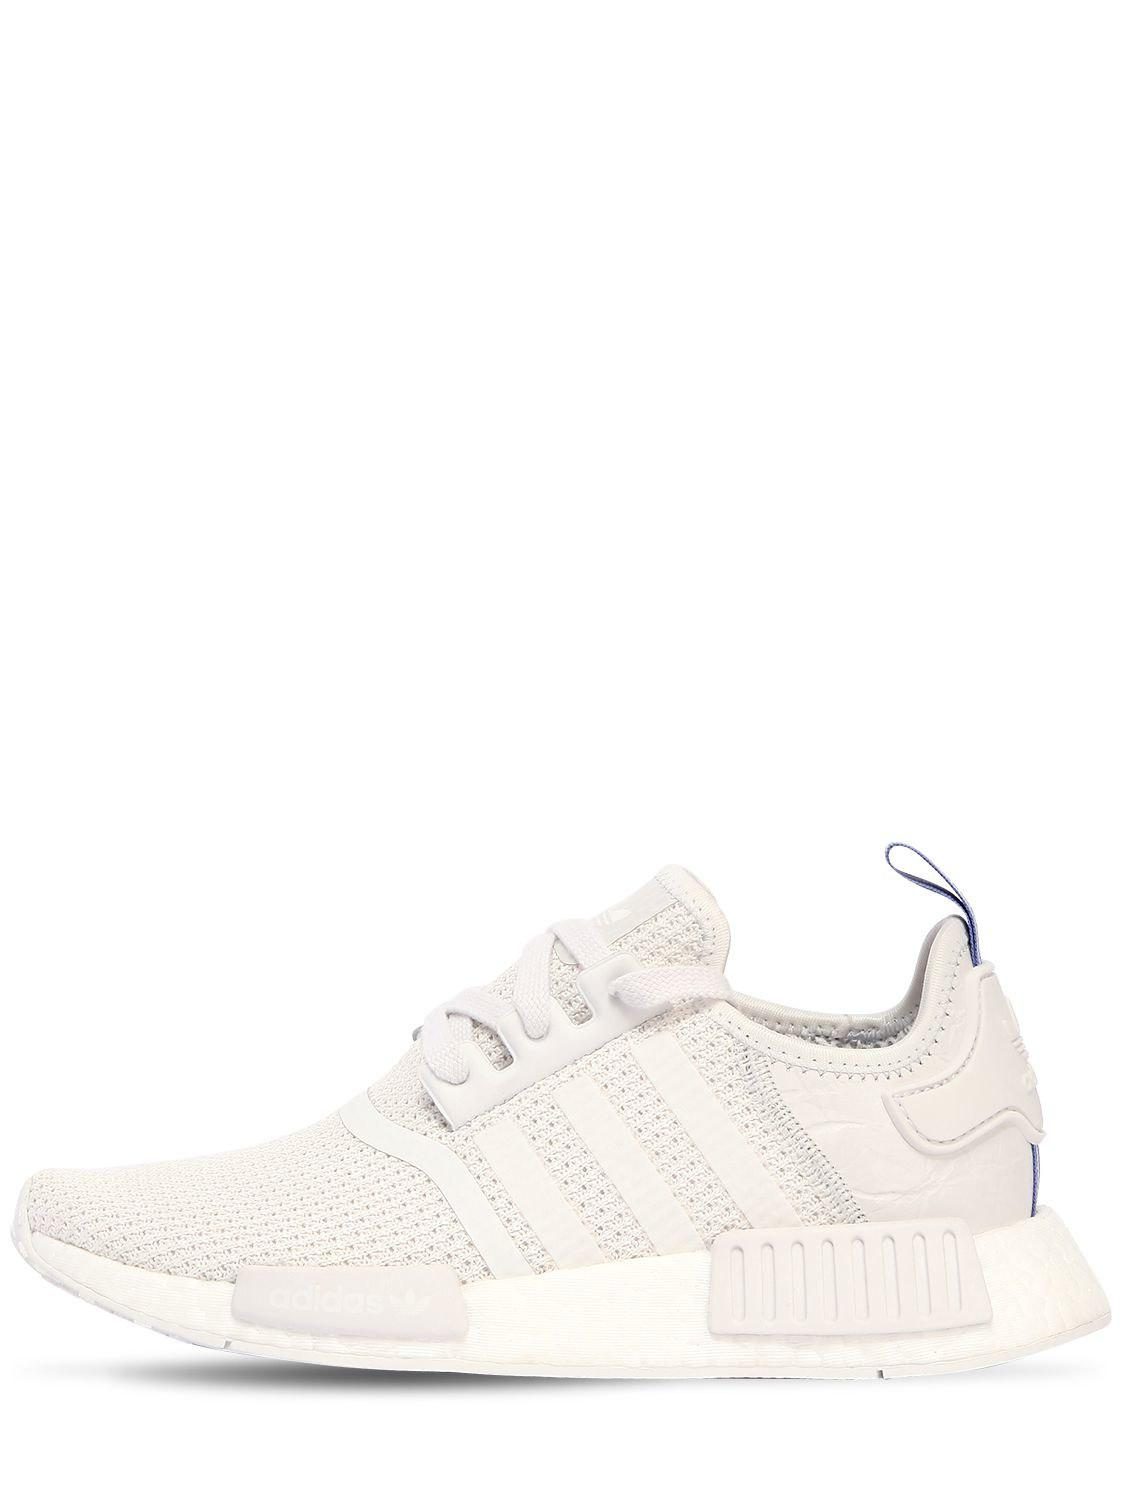 e268f1097 adidas Originals Nmd R1 Sneakers in White - Lyst